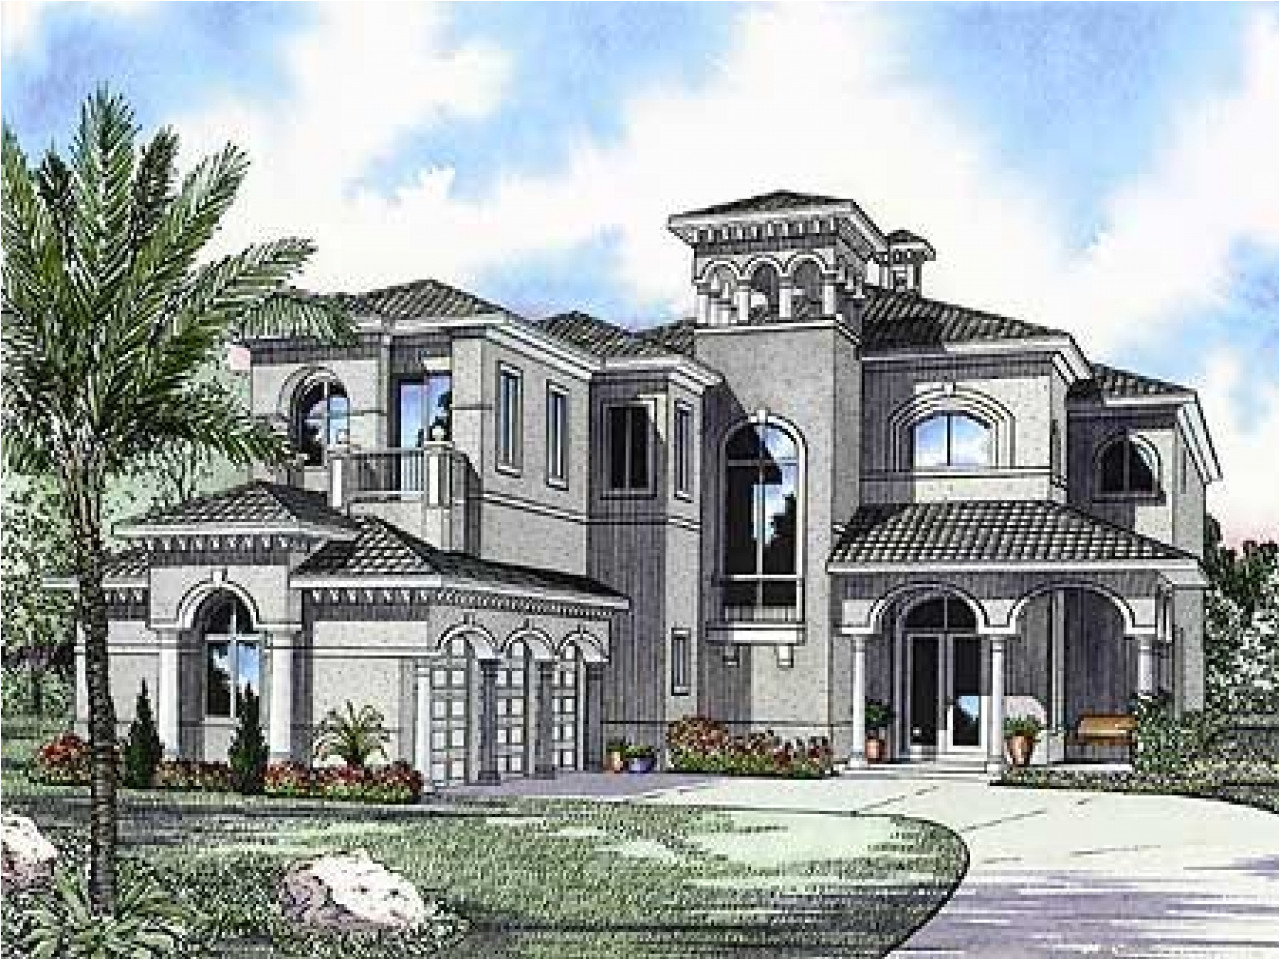 ae6bf9043500d55f home luxury mediterranean house plans designs mediterranean house plans